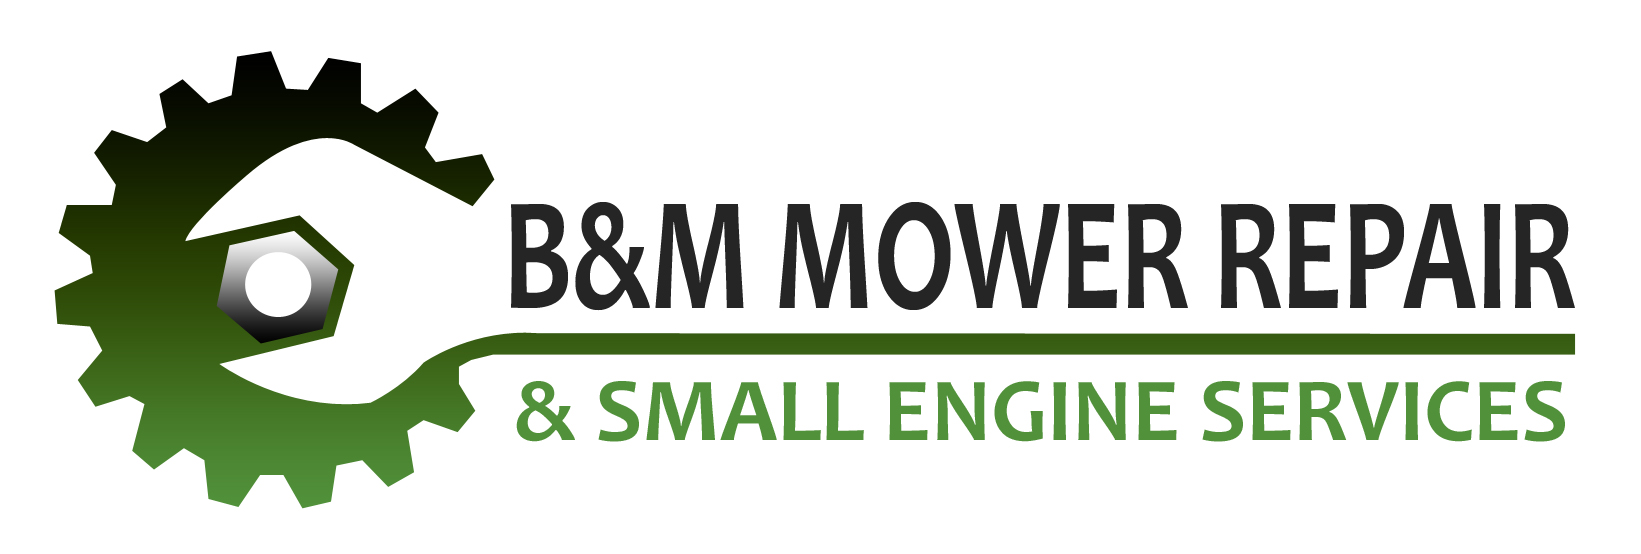 B & M Mower Repair